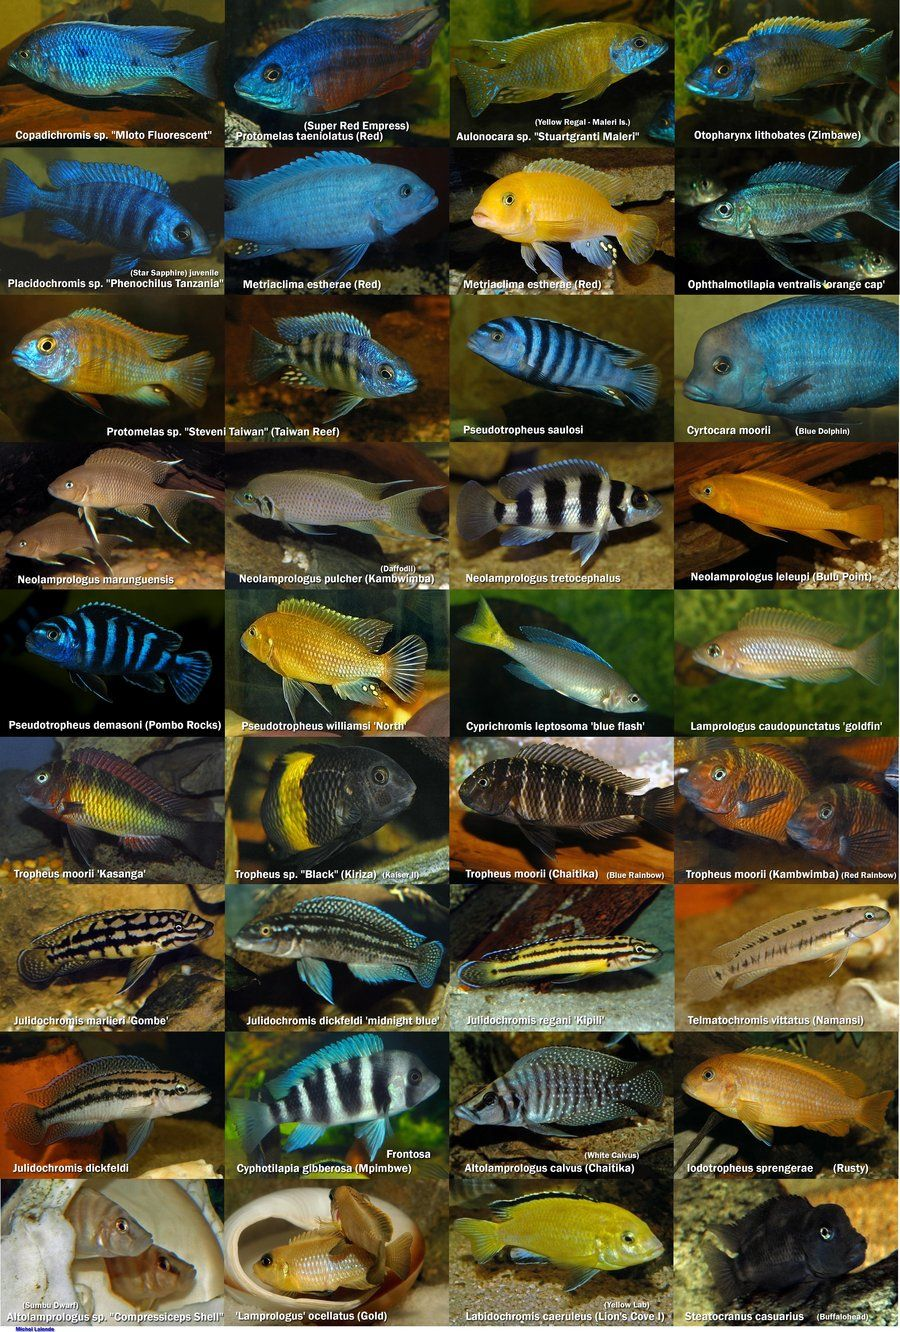 African Cichlids Poster Freshwater Yea I Have Literally Had Each Of These Fish In This And Still A Few To Day Love